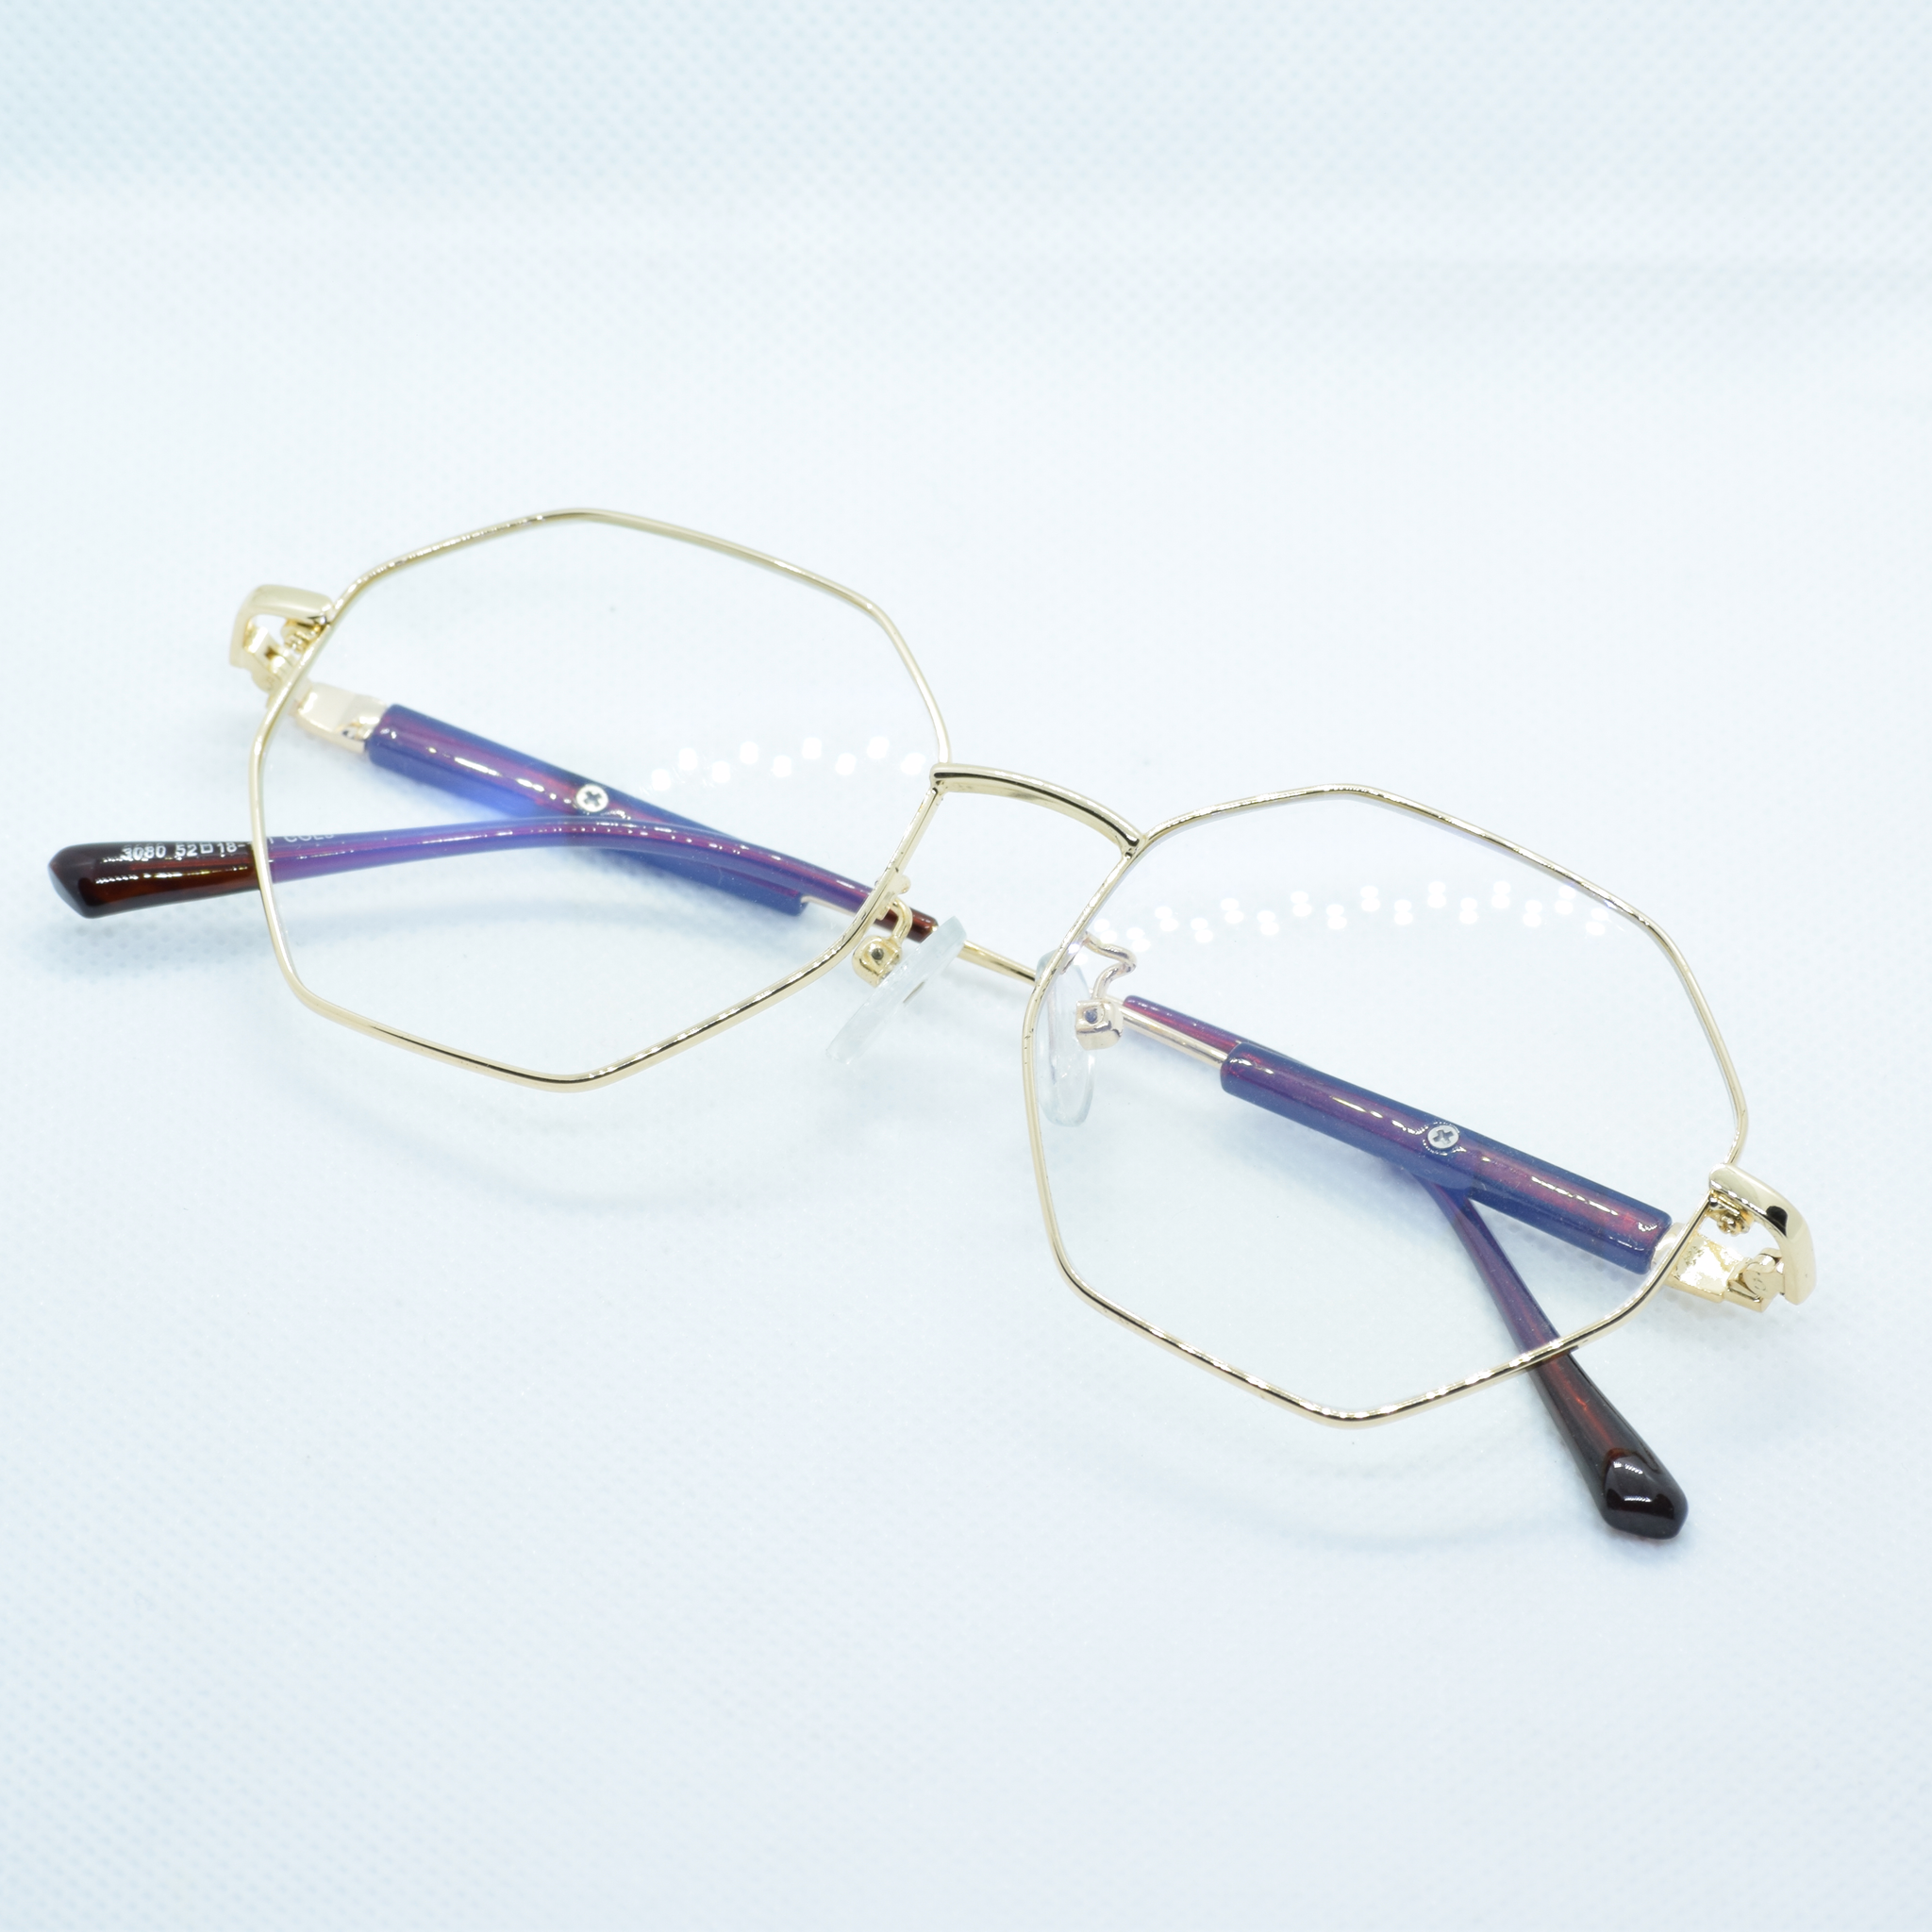 Hexagonal Metal Frame Eye Glasses - NUBAMALL